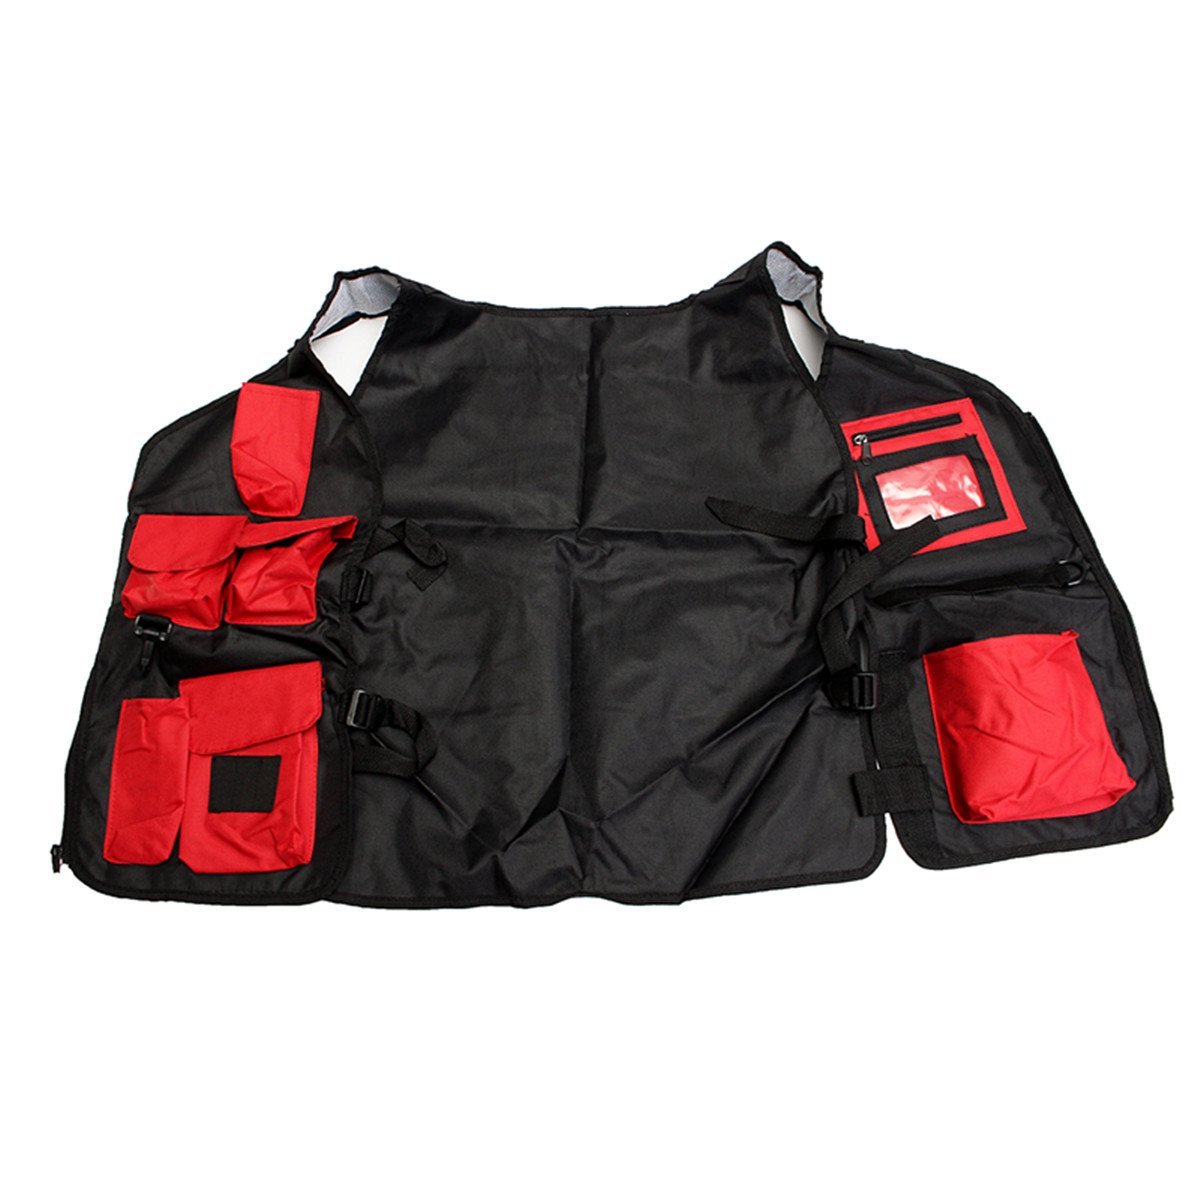 Tool Organizers Electrician Carpenter Plumber Craftman Construction Pouch Bag Tool Vest by Yoton (Image #8)